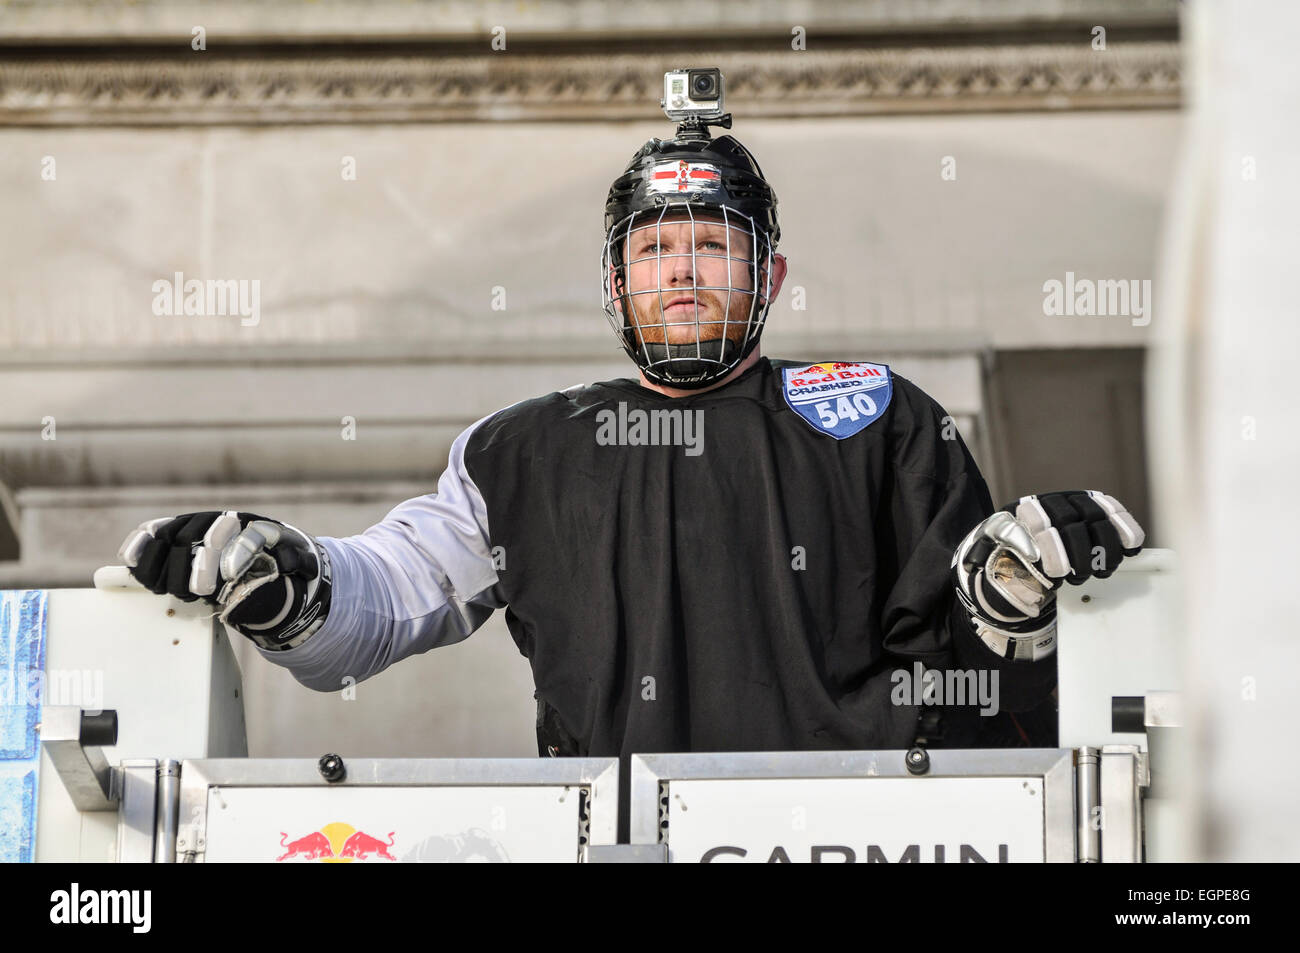 Belfast, Northern Ireland. 20/02/2015 - A skater wearing a Go-Pro video camera at the start of the Red Bull Crashed - Stock Image